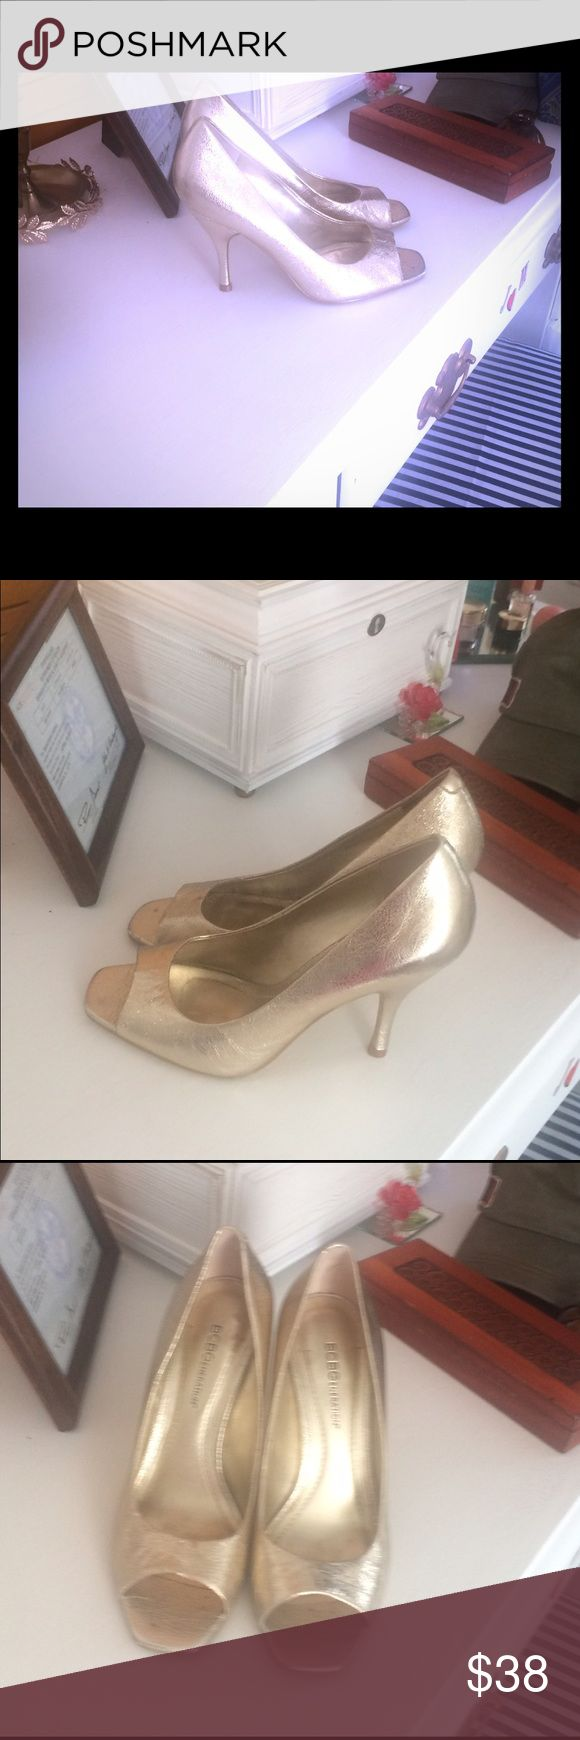 Bcbg Max gold peep toe heels Bcbg Max gold peep toe heels. Worn one time for family pictures at my mothers home indoors. Perfect condition , quality is perfect new condition. No imperfections. Shoes Heels